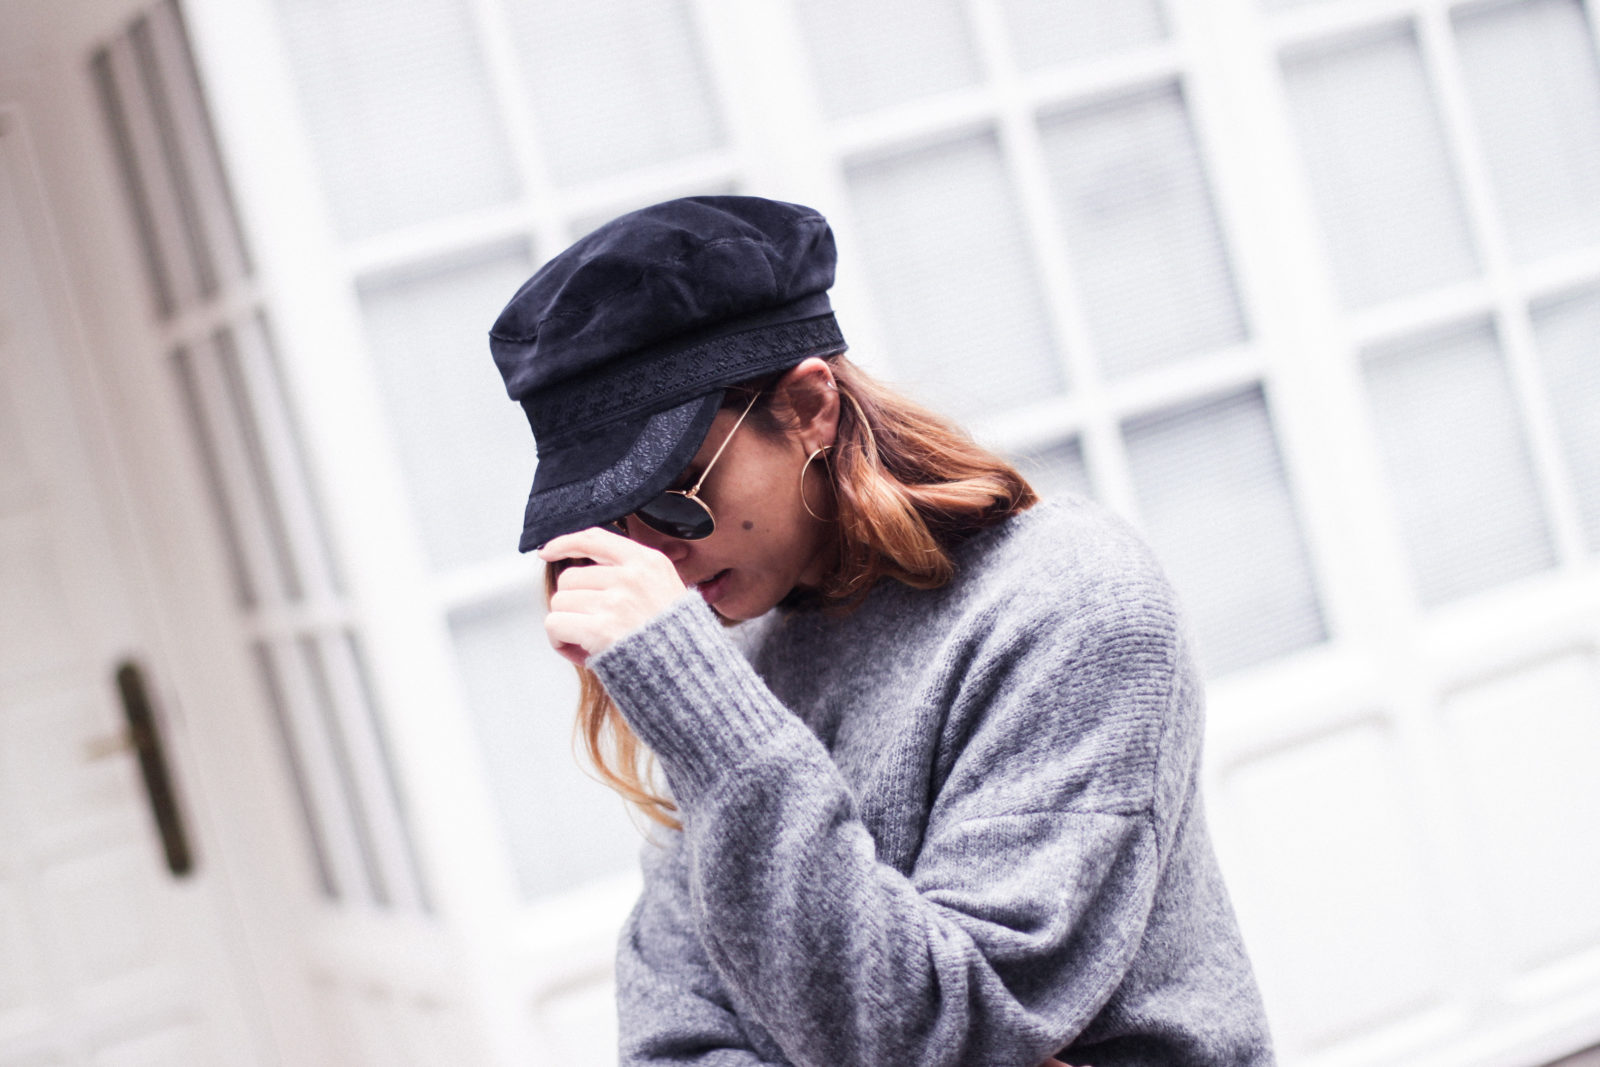 baker_boy_hat_flared_pants_vans_oversize_knit_fall_2016_trends_street_style_outfits_donkeycool-32